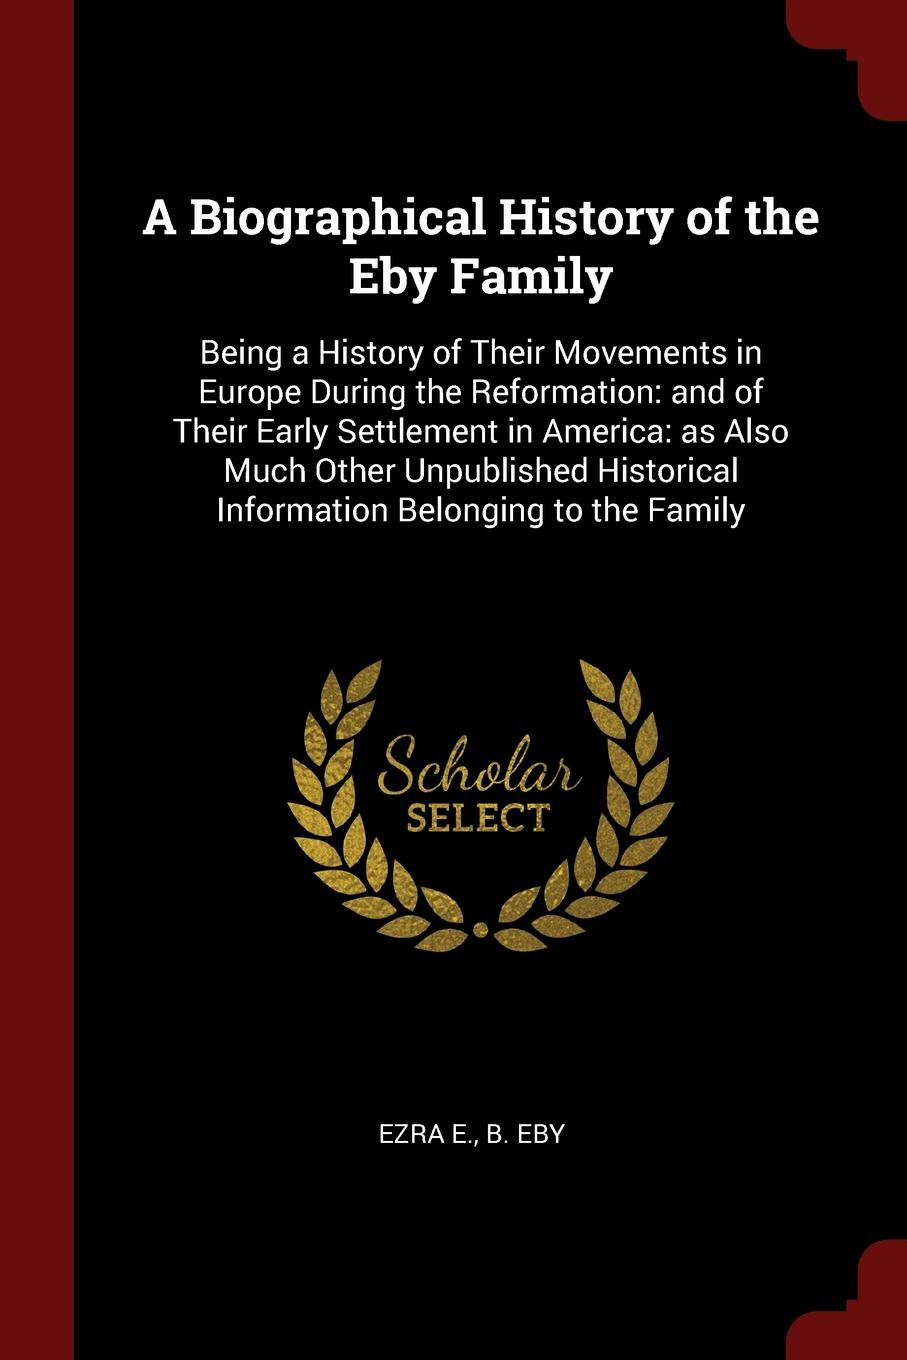 A Biographical History of the Eby Family. Being a History of Their Movements in Europe During the Reformation: and of Their Early Settlement in America: as Also Much Other Unpublished Historical Information Belonging to the Family